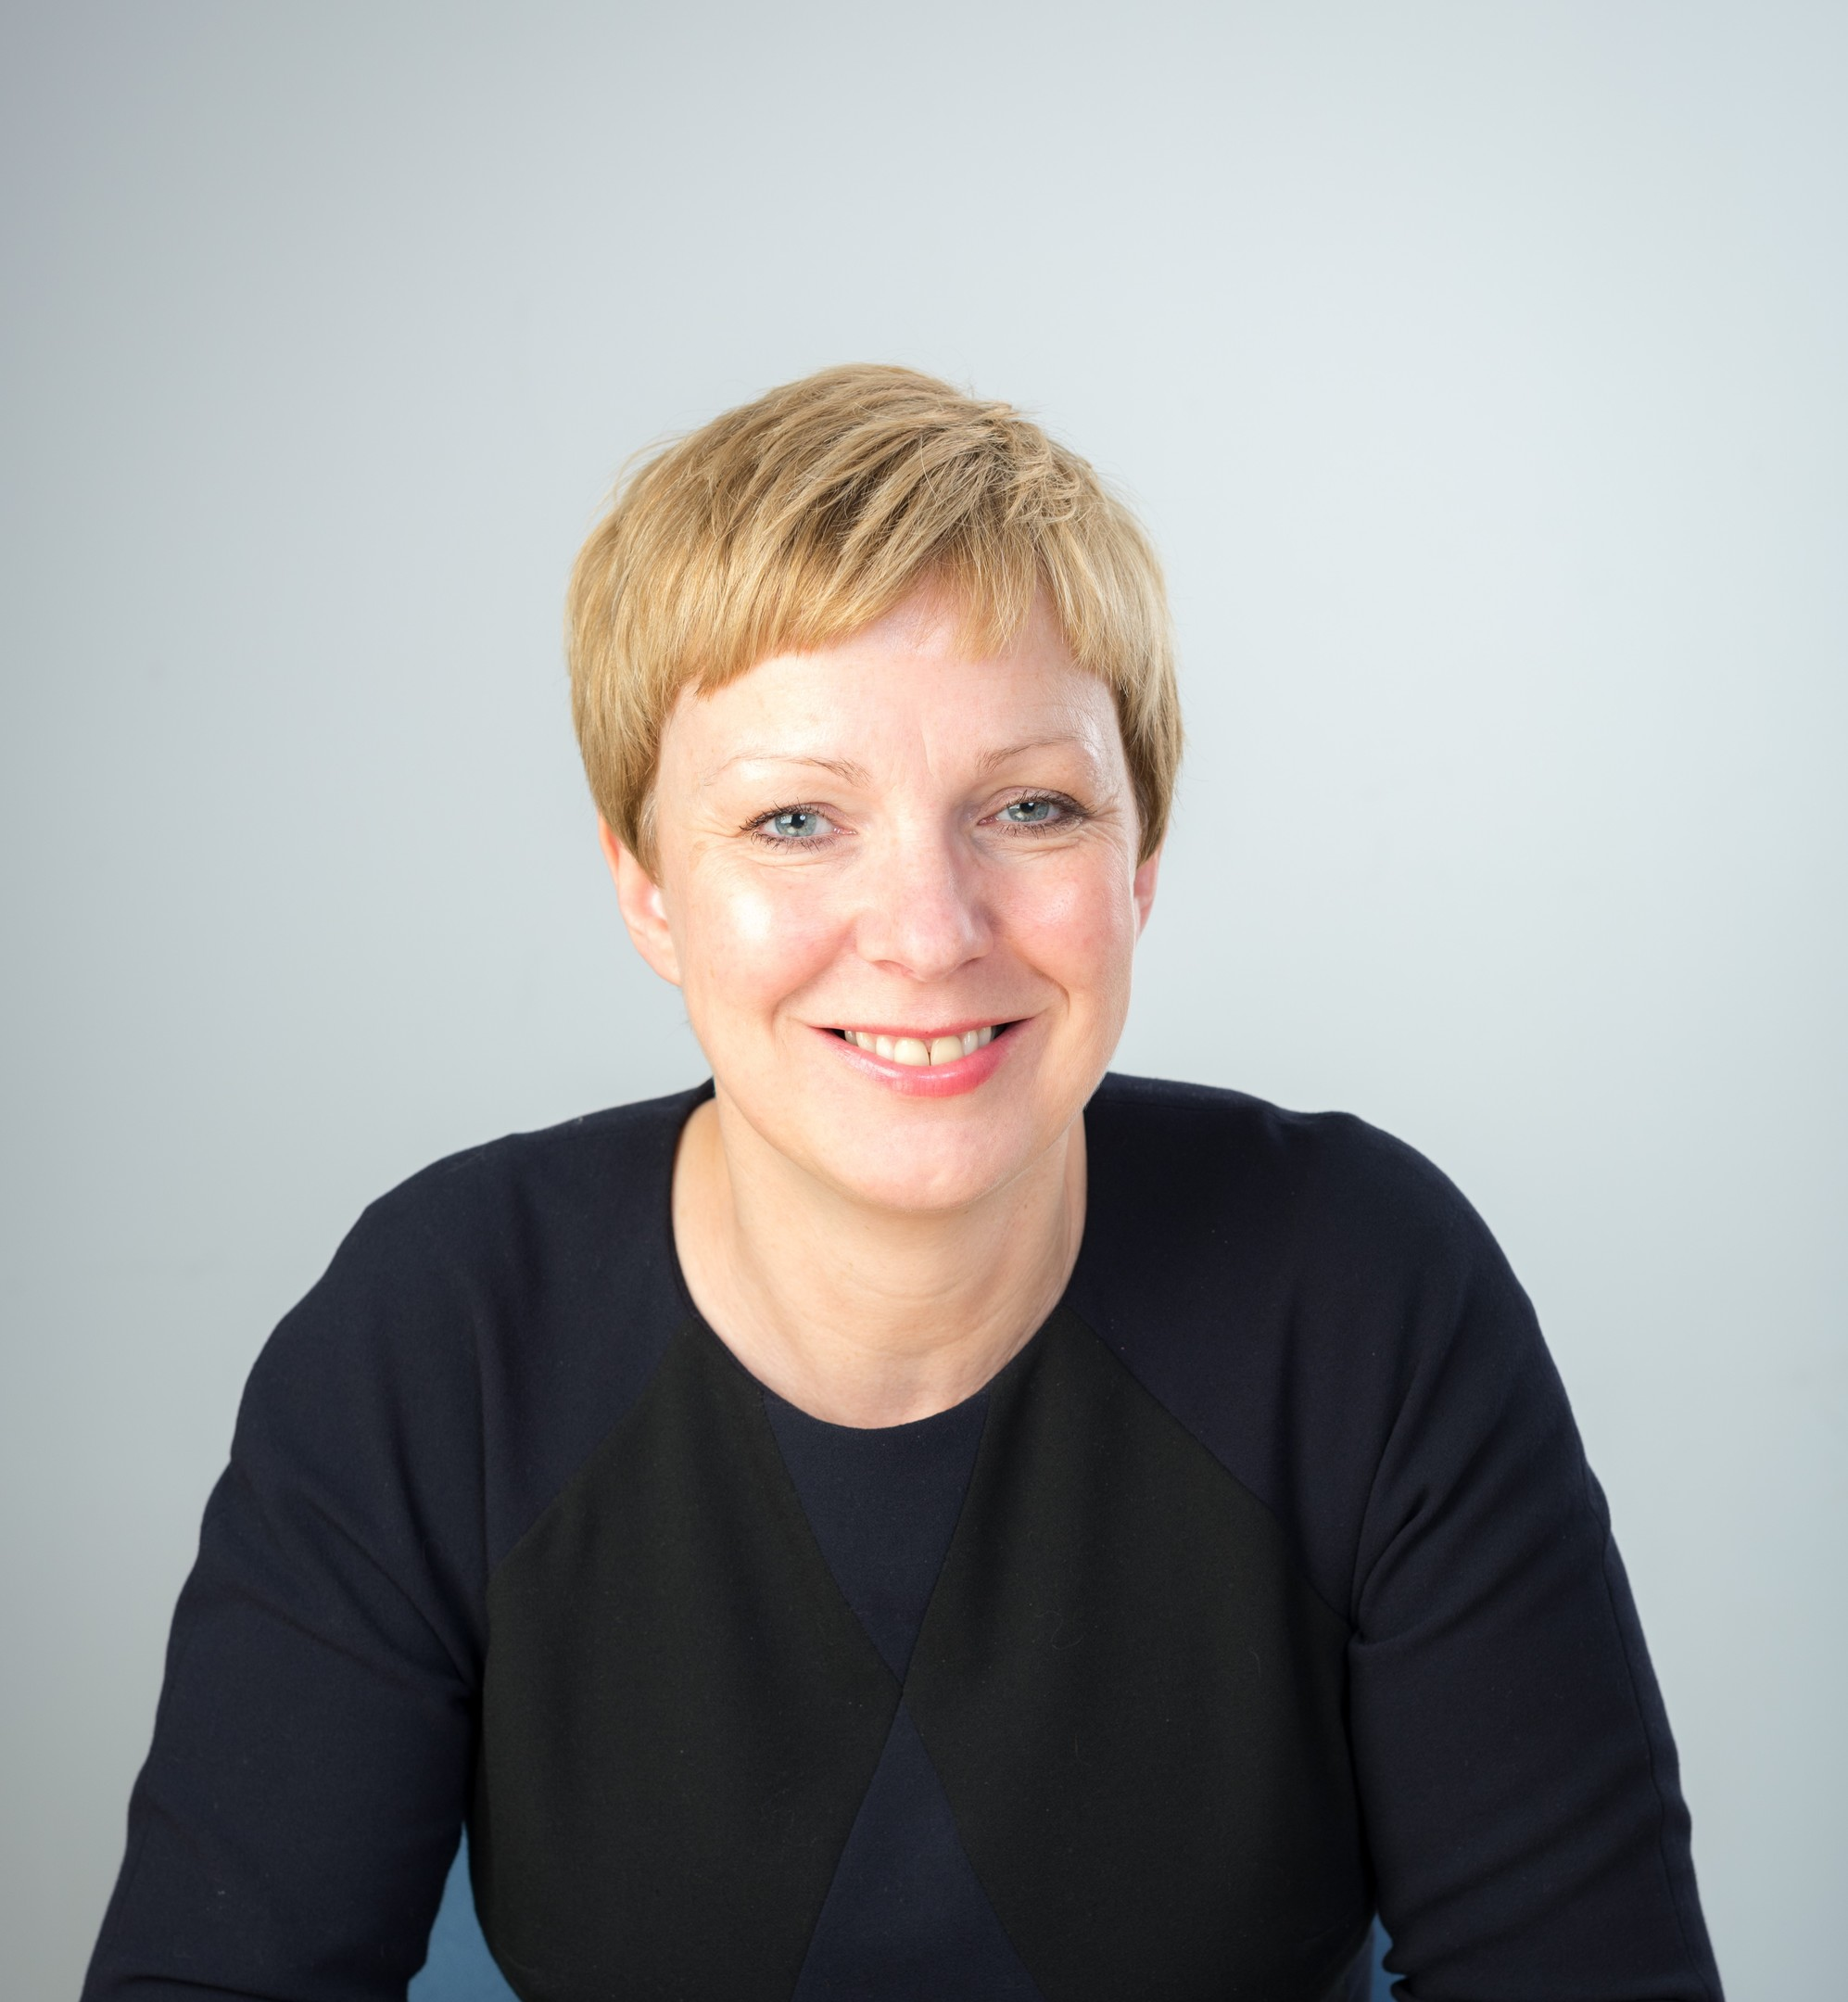 Jennifer Young, Chairman and Partner at Ledingham Chalmers